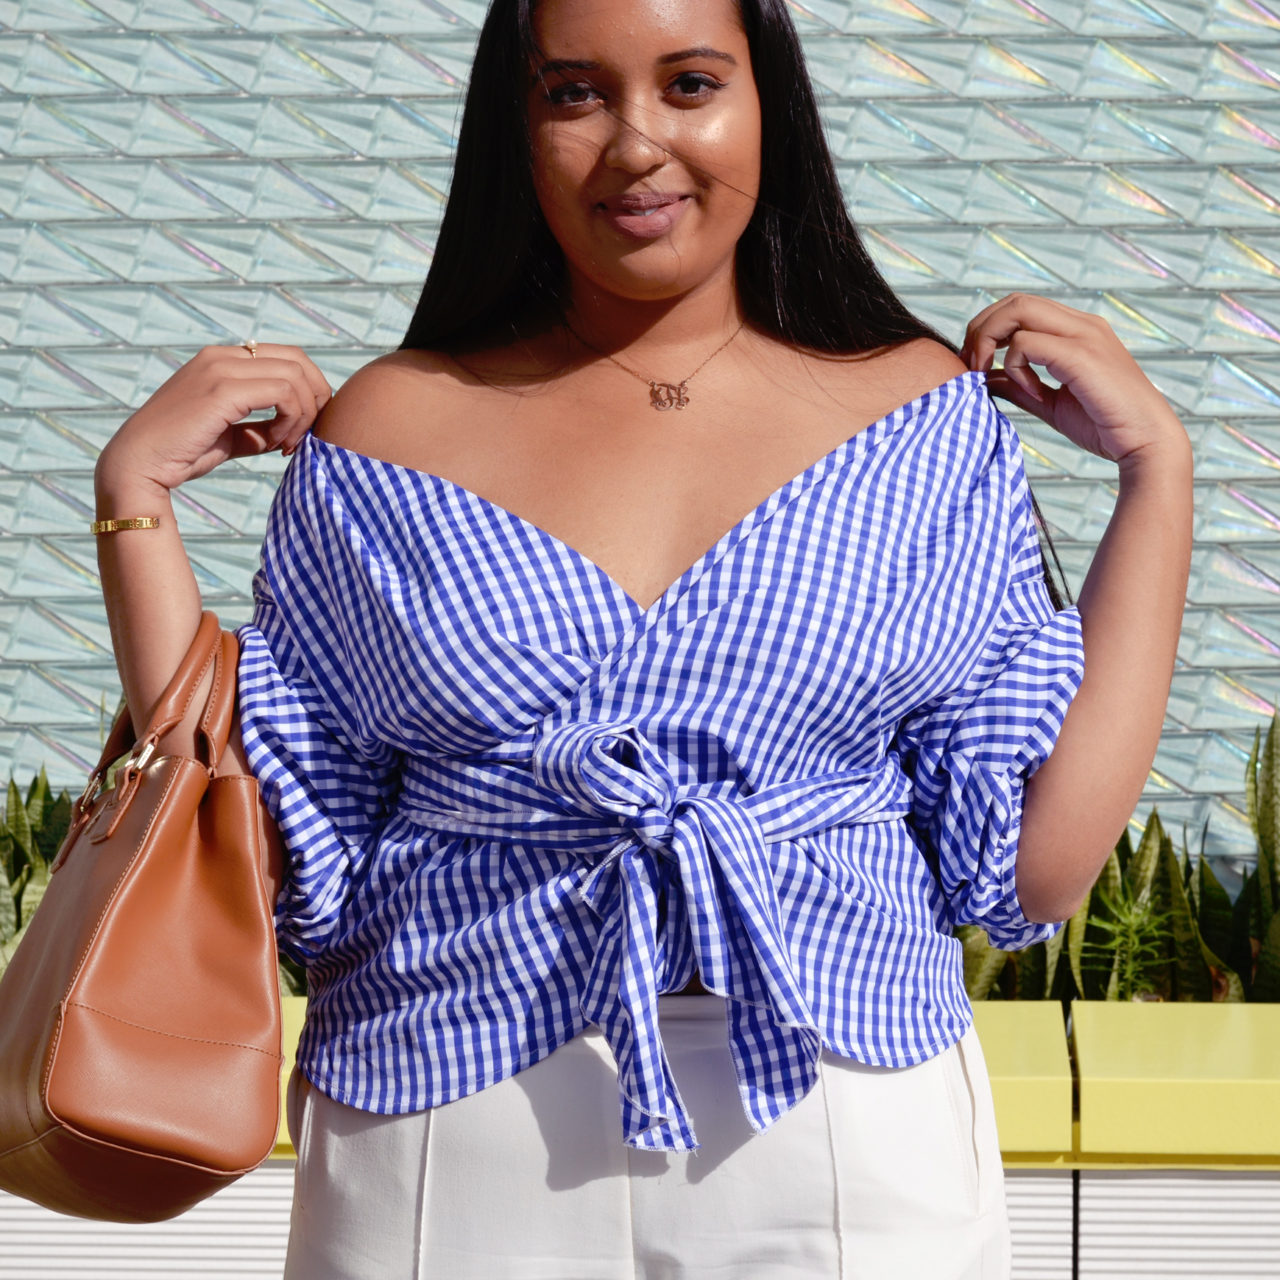 #OOTD: Gingham Is The New Black